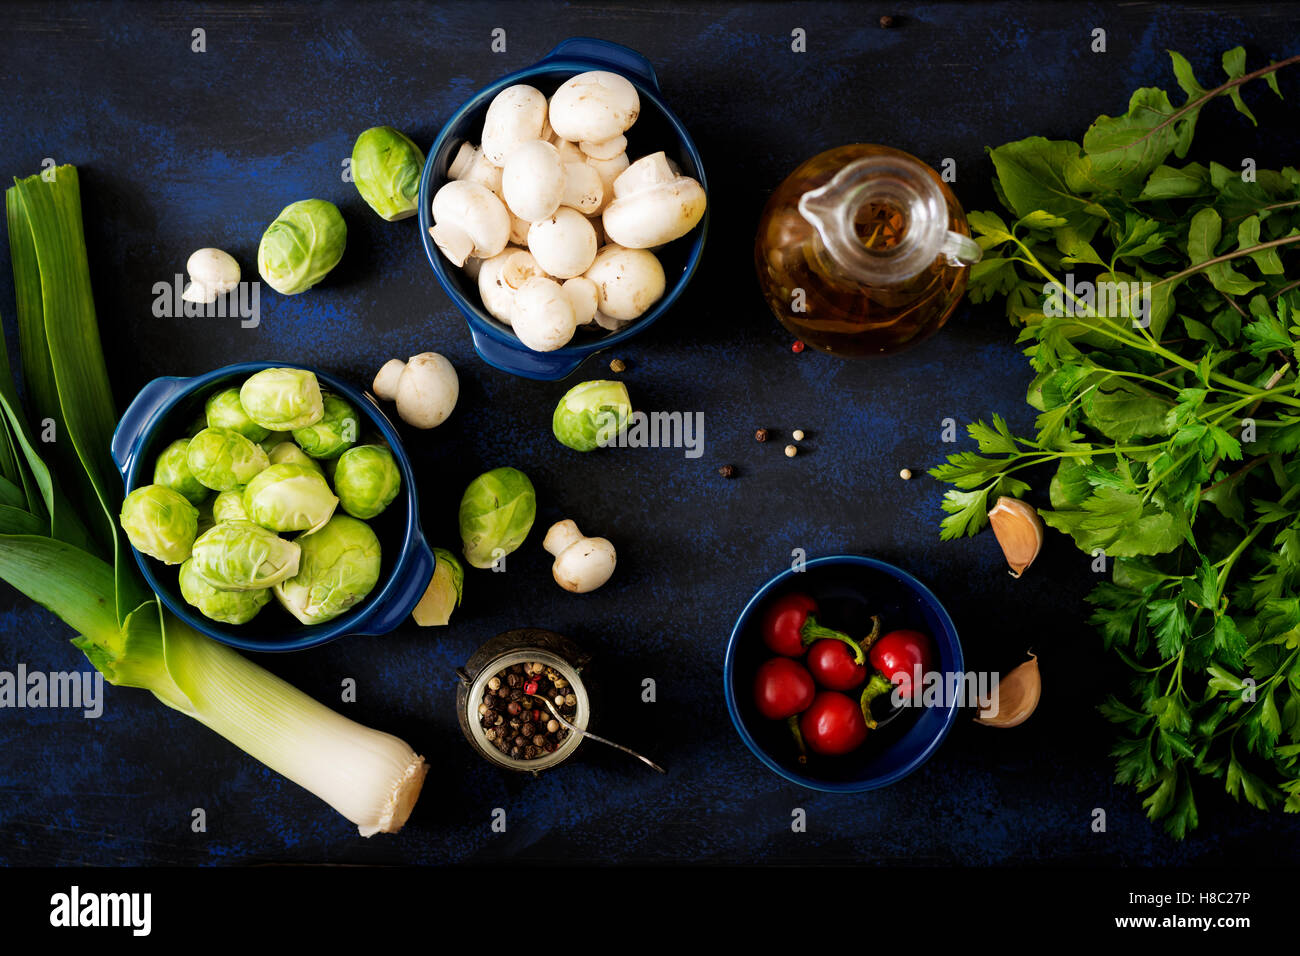 Dietary menu. Ingredients: Vegetables - Brussels sprouts, mushrooms, leeks and herbs on a dark background. Top view. - Stock Image